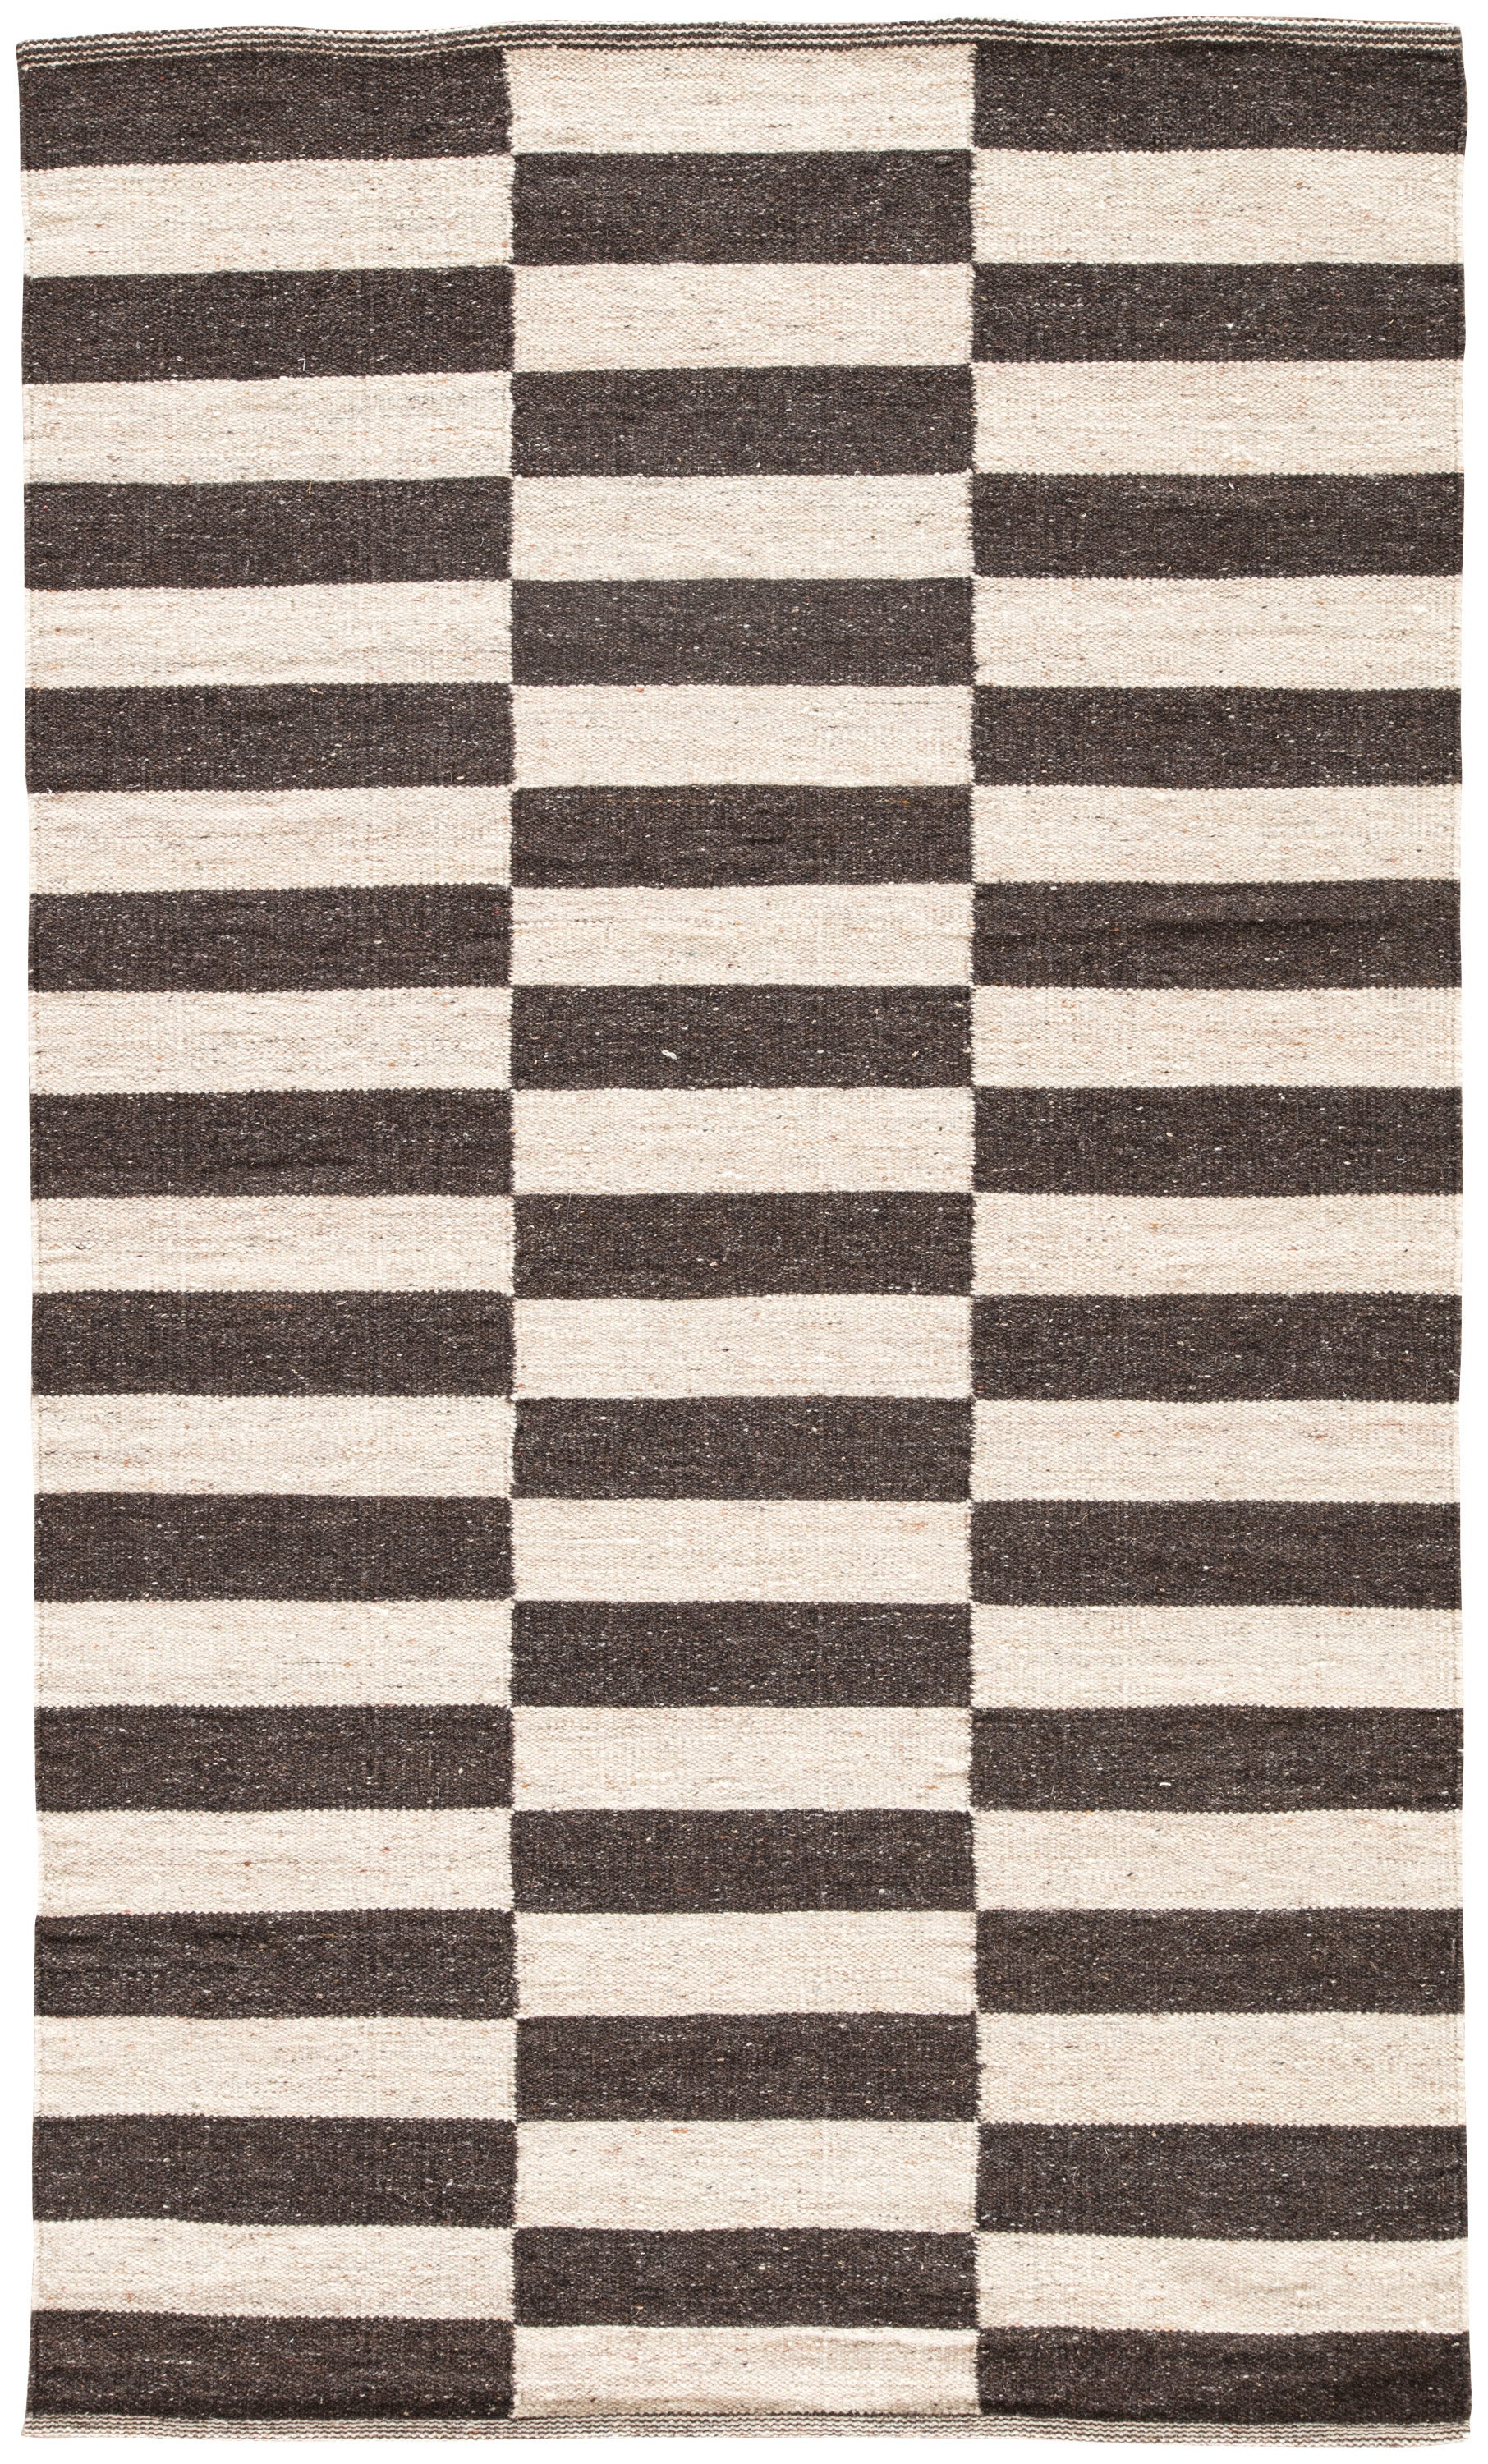 Rectangle Brown Stripe Dhurrie Wool Contemporary recommended for Bedroom, Bathroom, Dining Room, Office, Hallway, Living Room